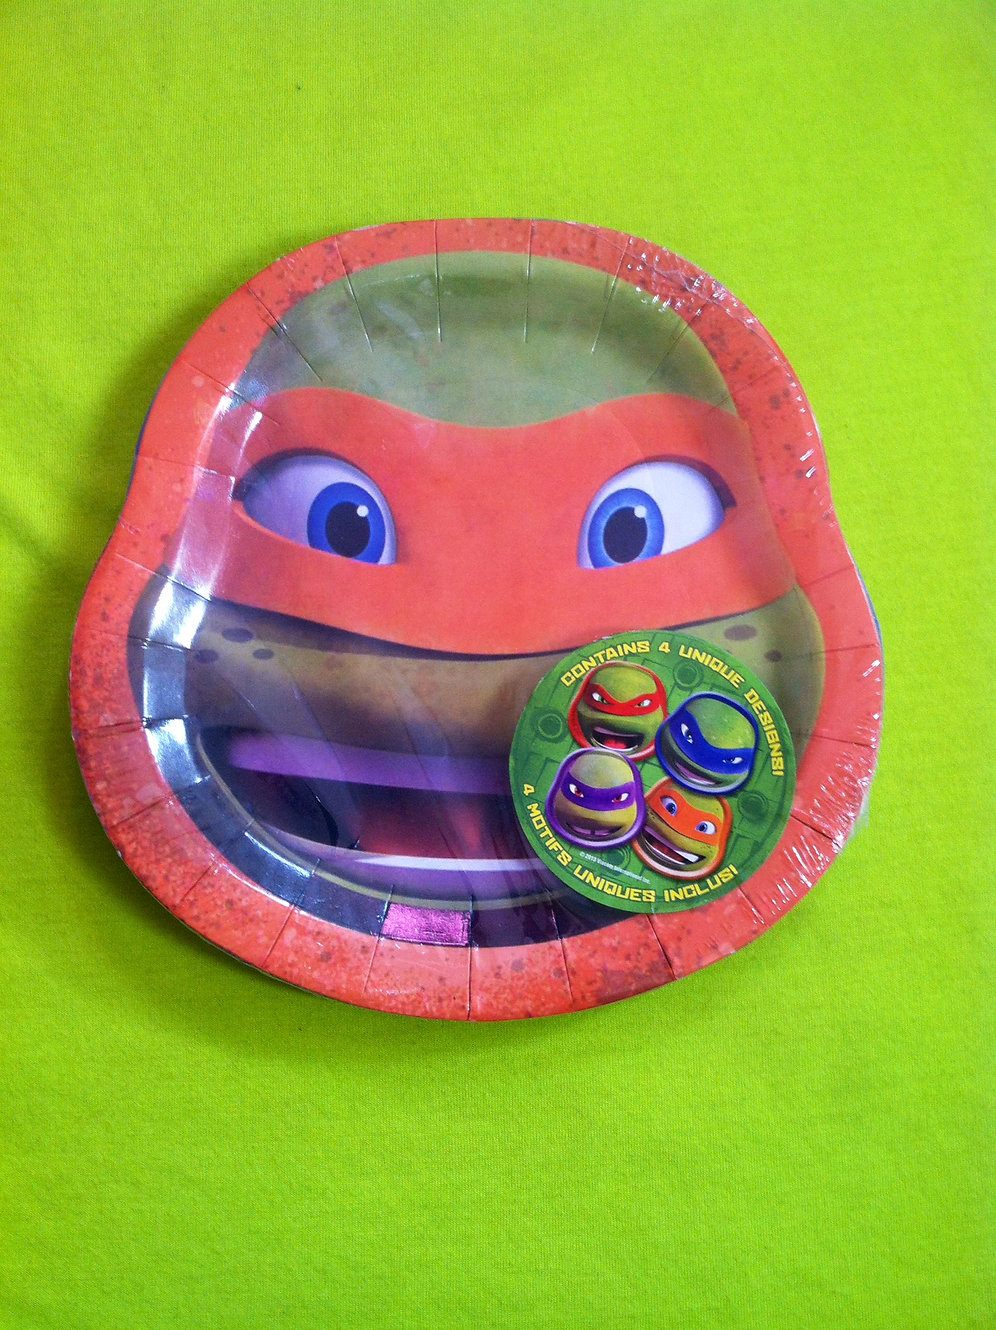 8 TMNT Teenage Mutant Ninja Turtles Cake Plates | partyinabox5